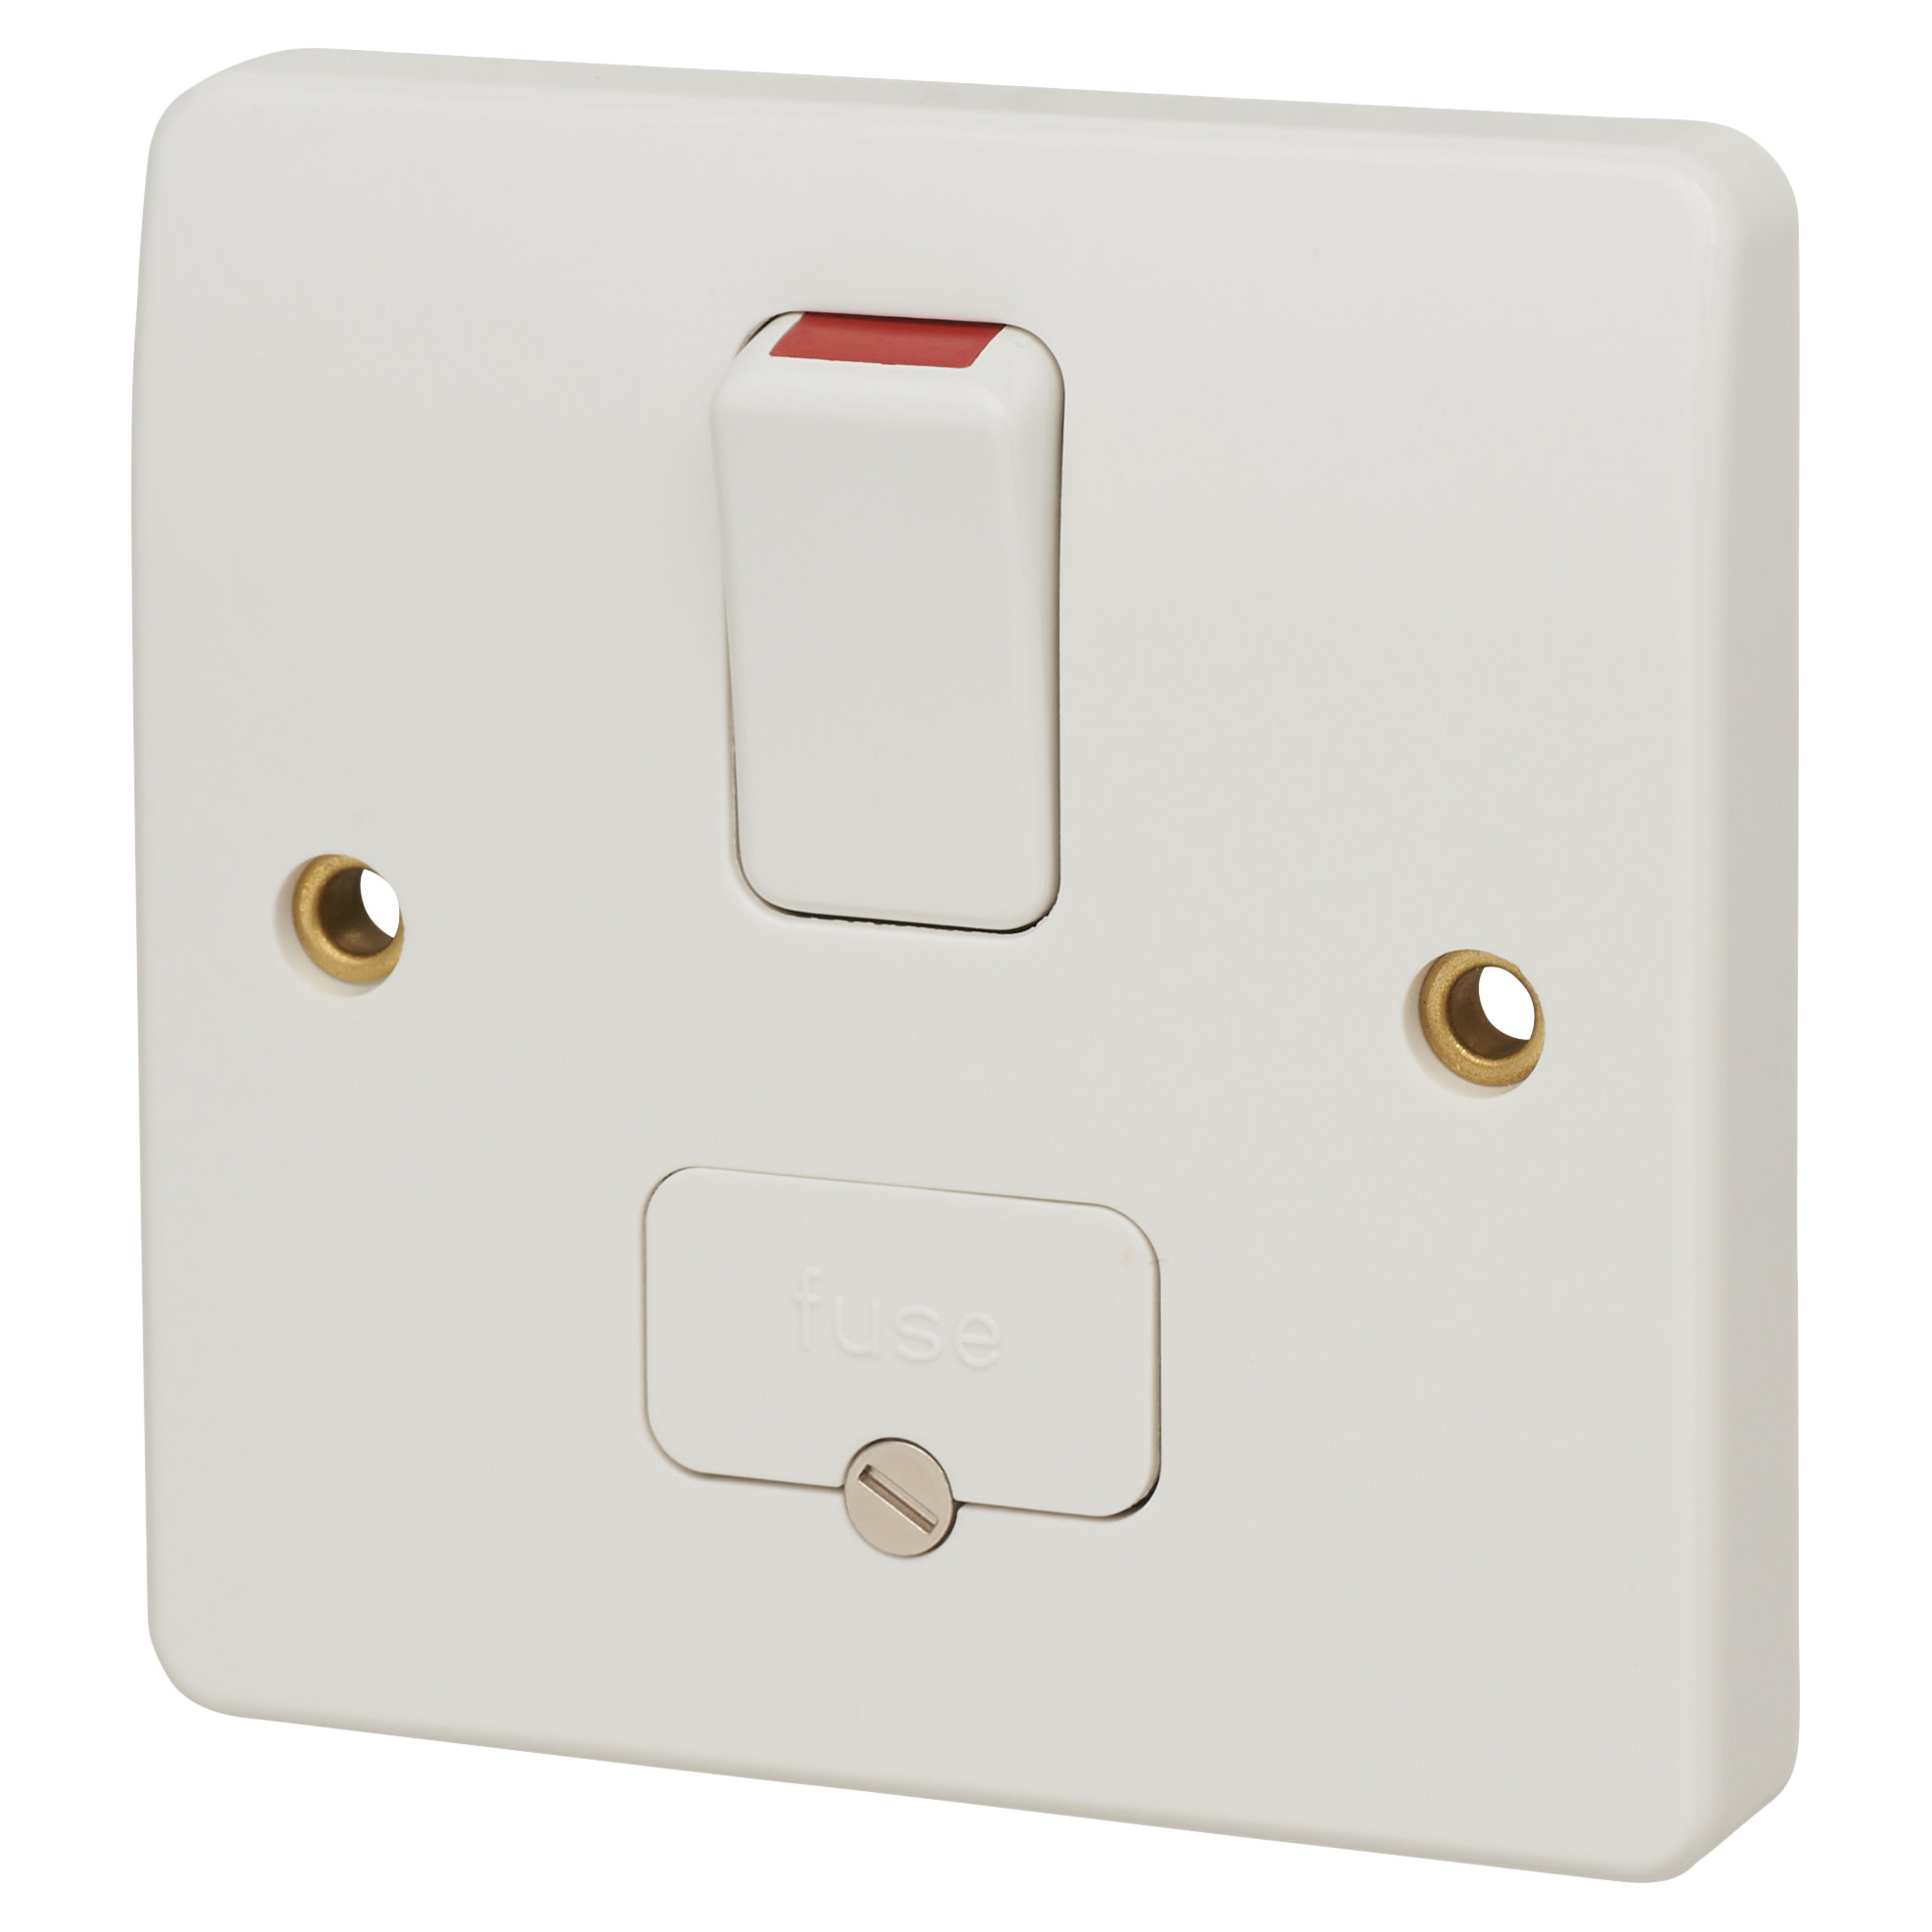 MK Logic Plus 13A 1 Gang Double Pole Switched Fused Spur with Base Flex Output - White)